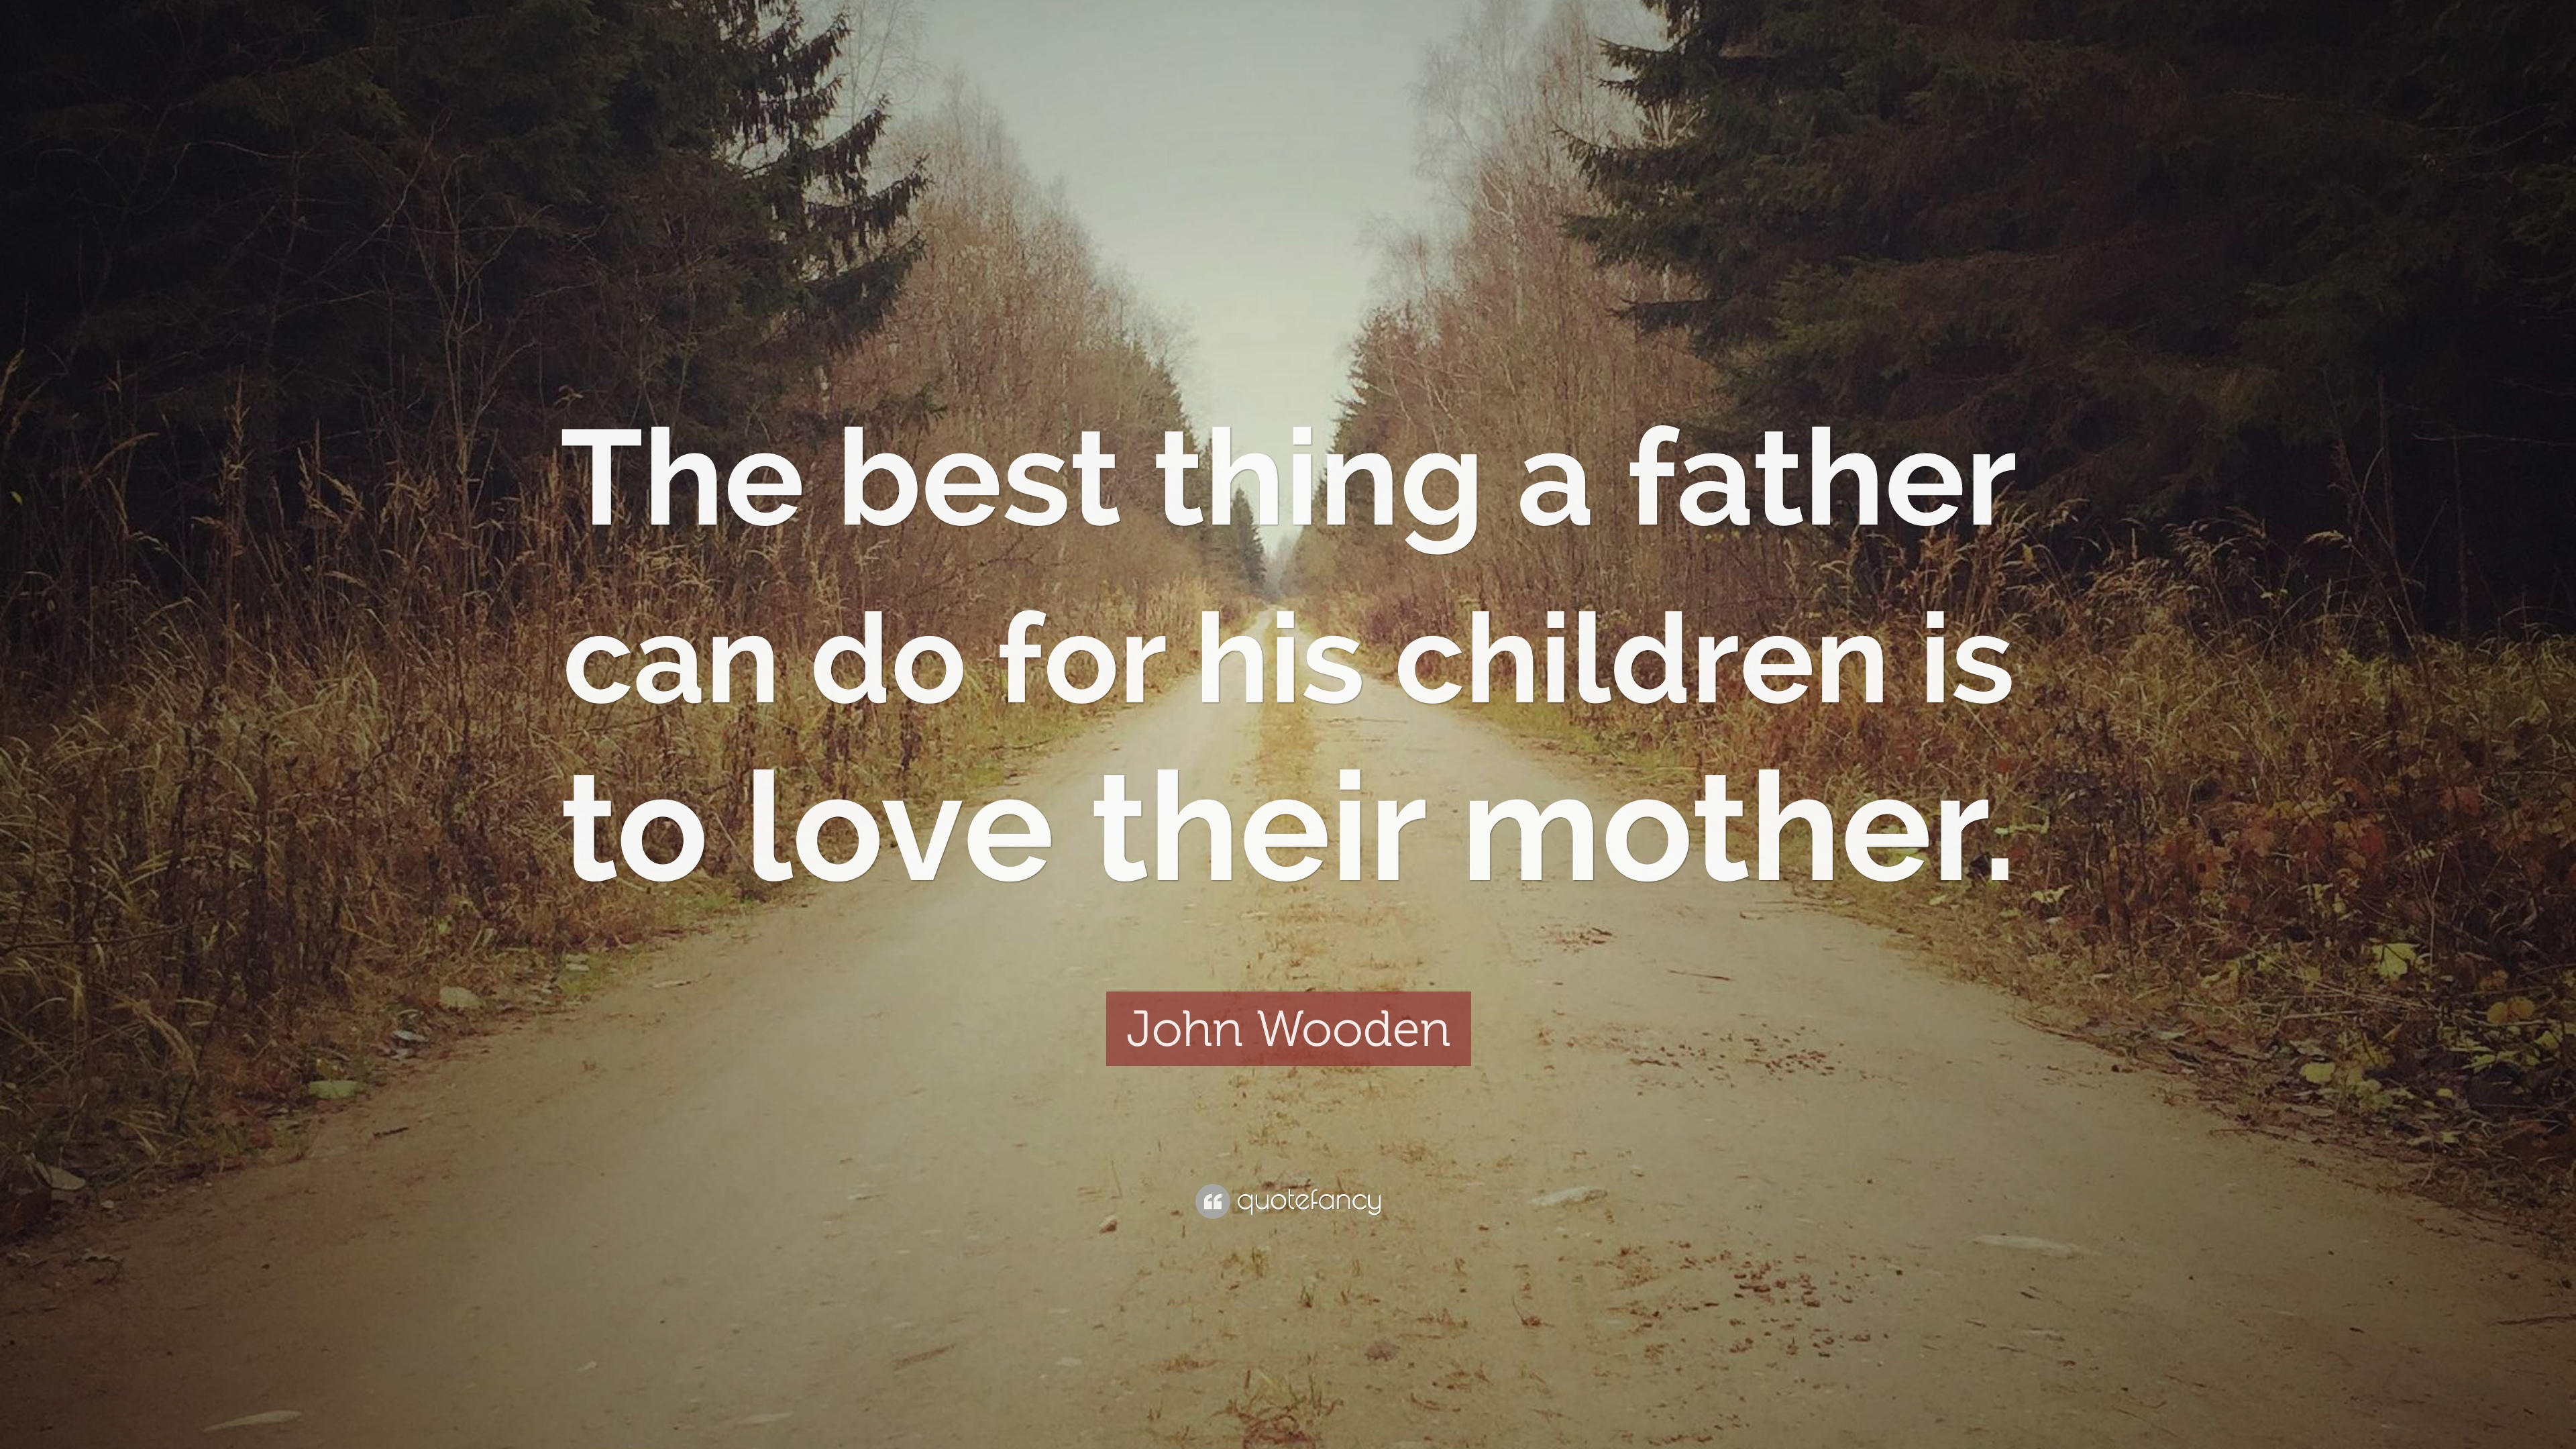 John Wooden Quote: The best thing a father can do for his